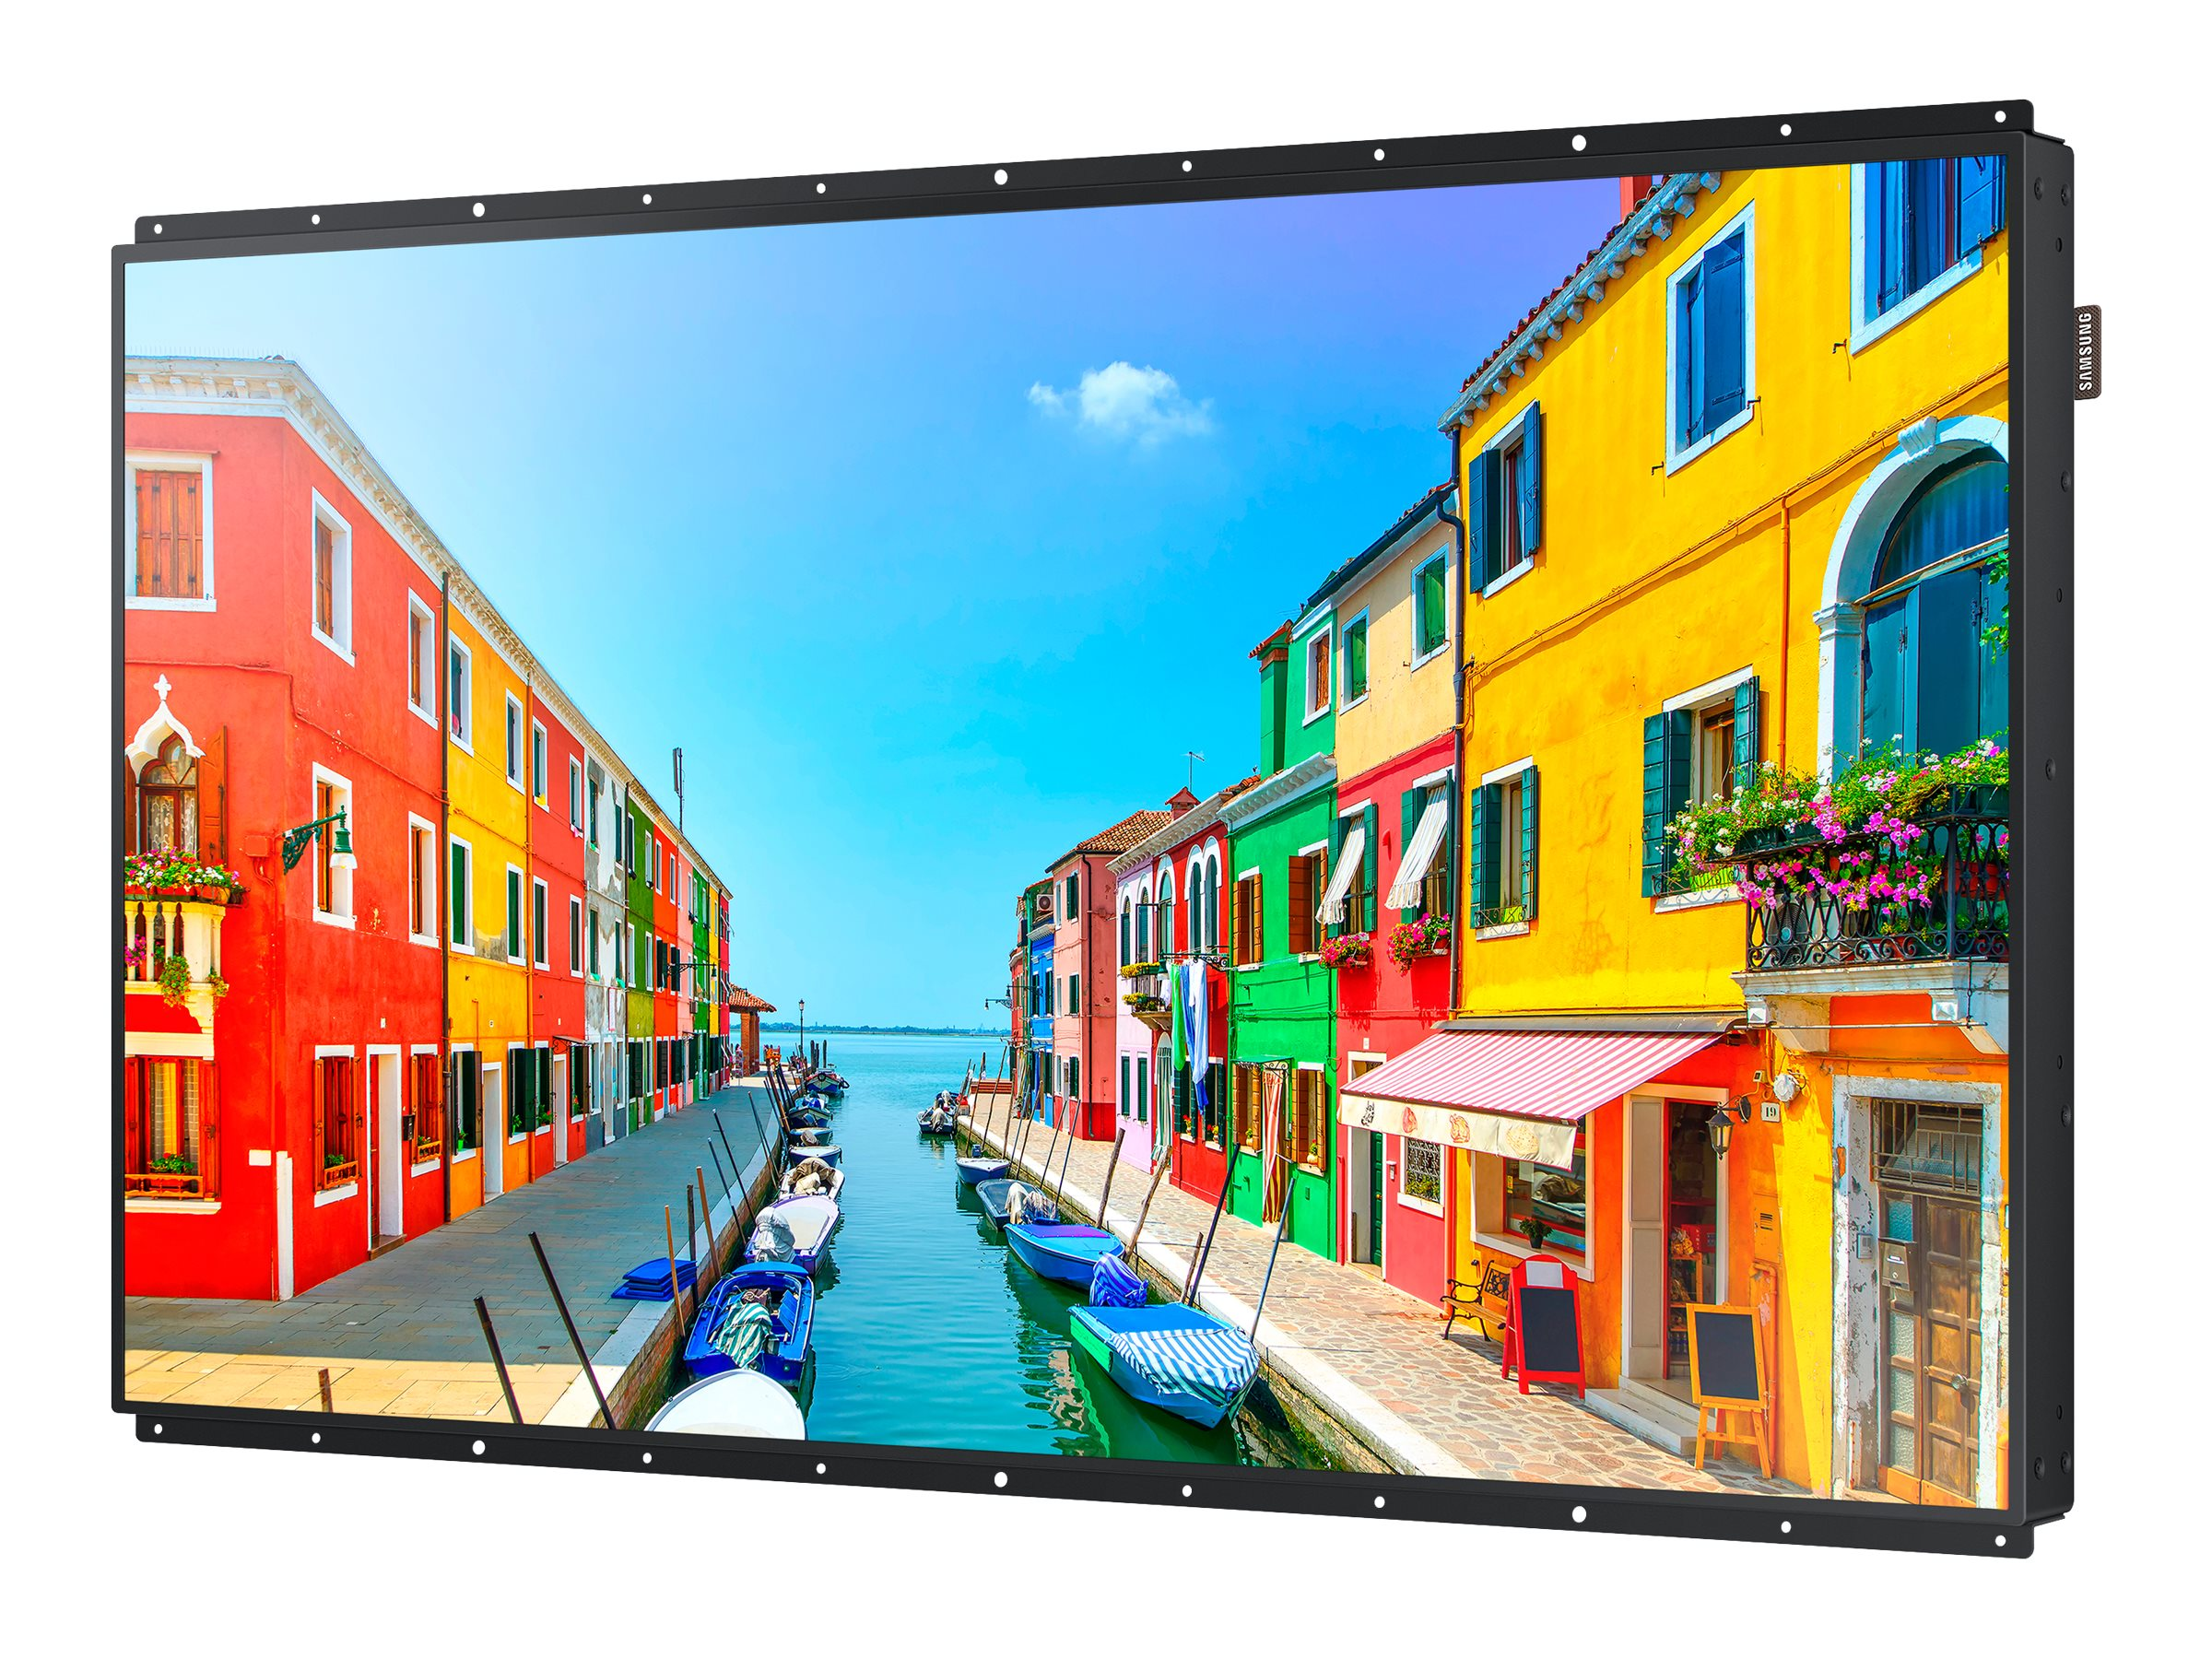 Samsung 46 OMD-K Series Full HD LED-LCD Outdoor Display, Black, OM46D-K